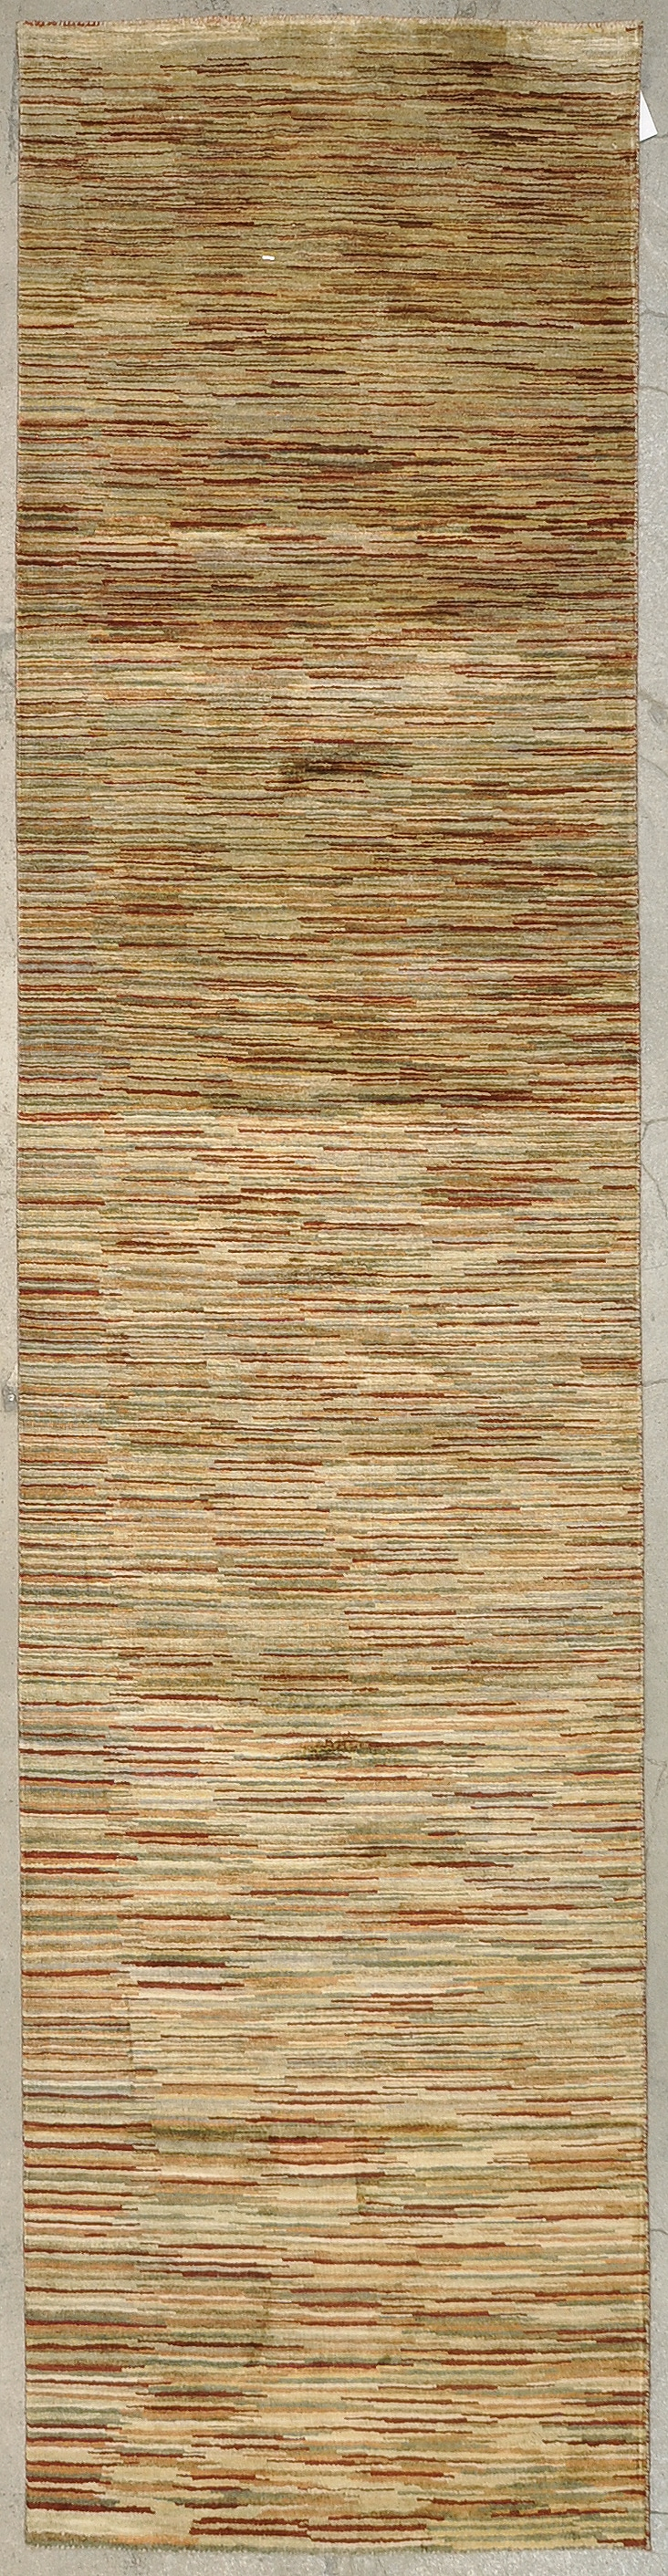 Ziegler & Co Modern rugs and more oriental carpet 33827-